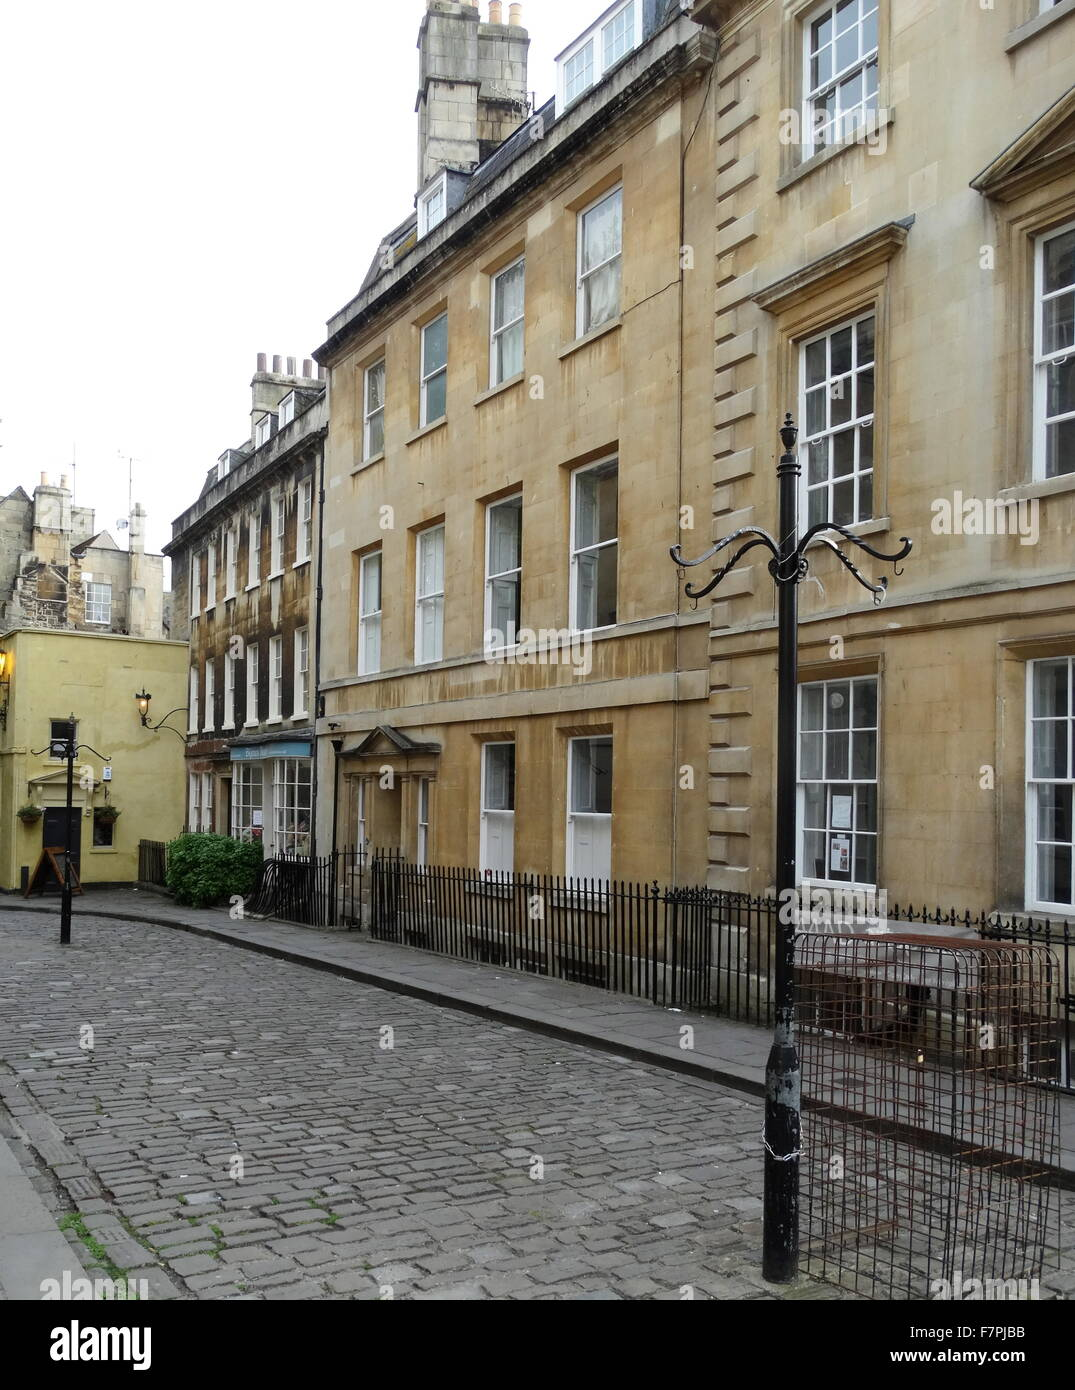 Georgian architecture in bath a city in somerset england for Garages in bath